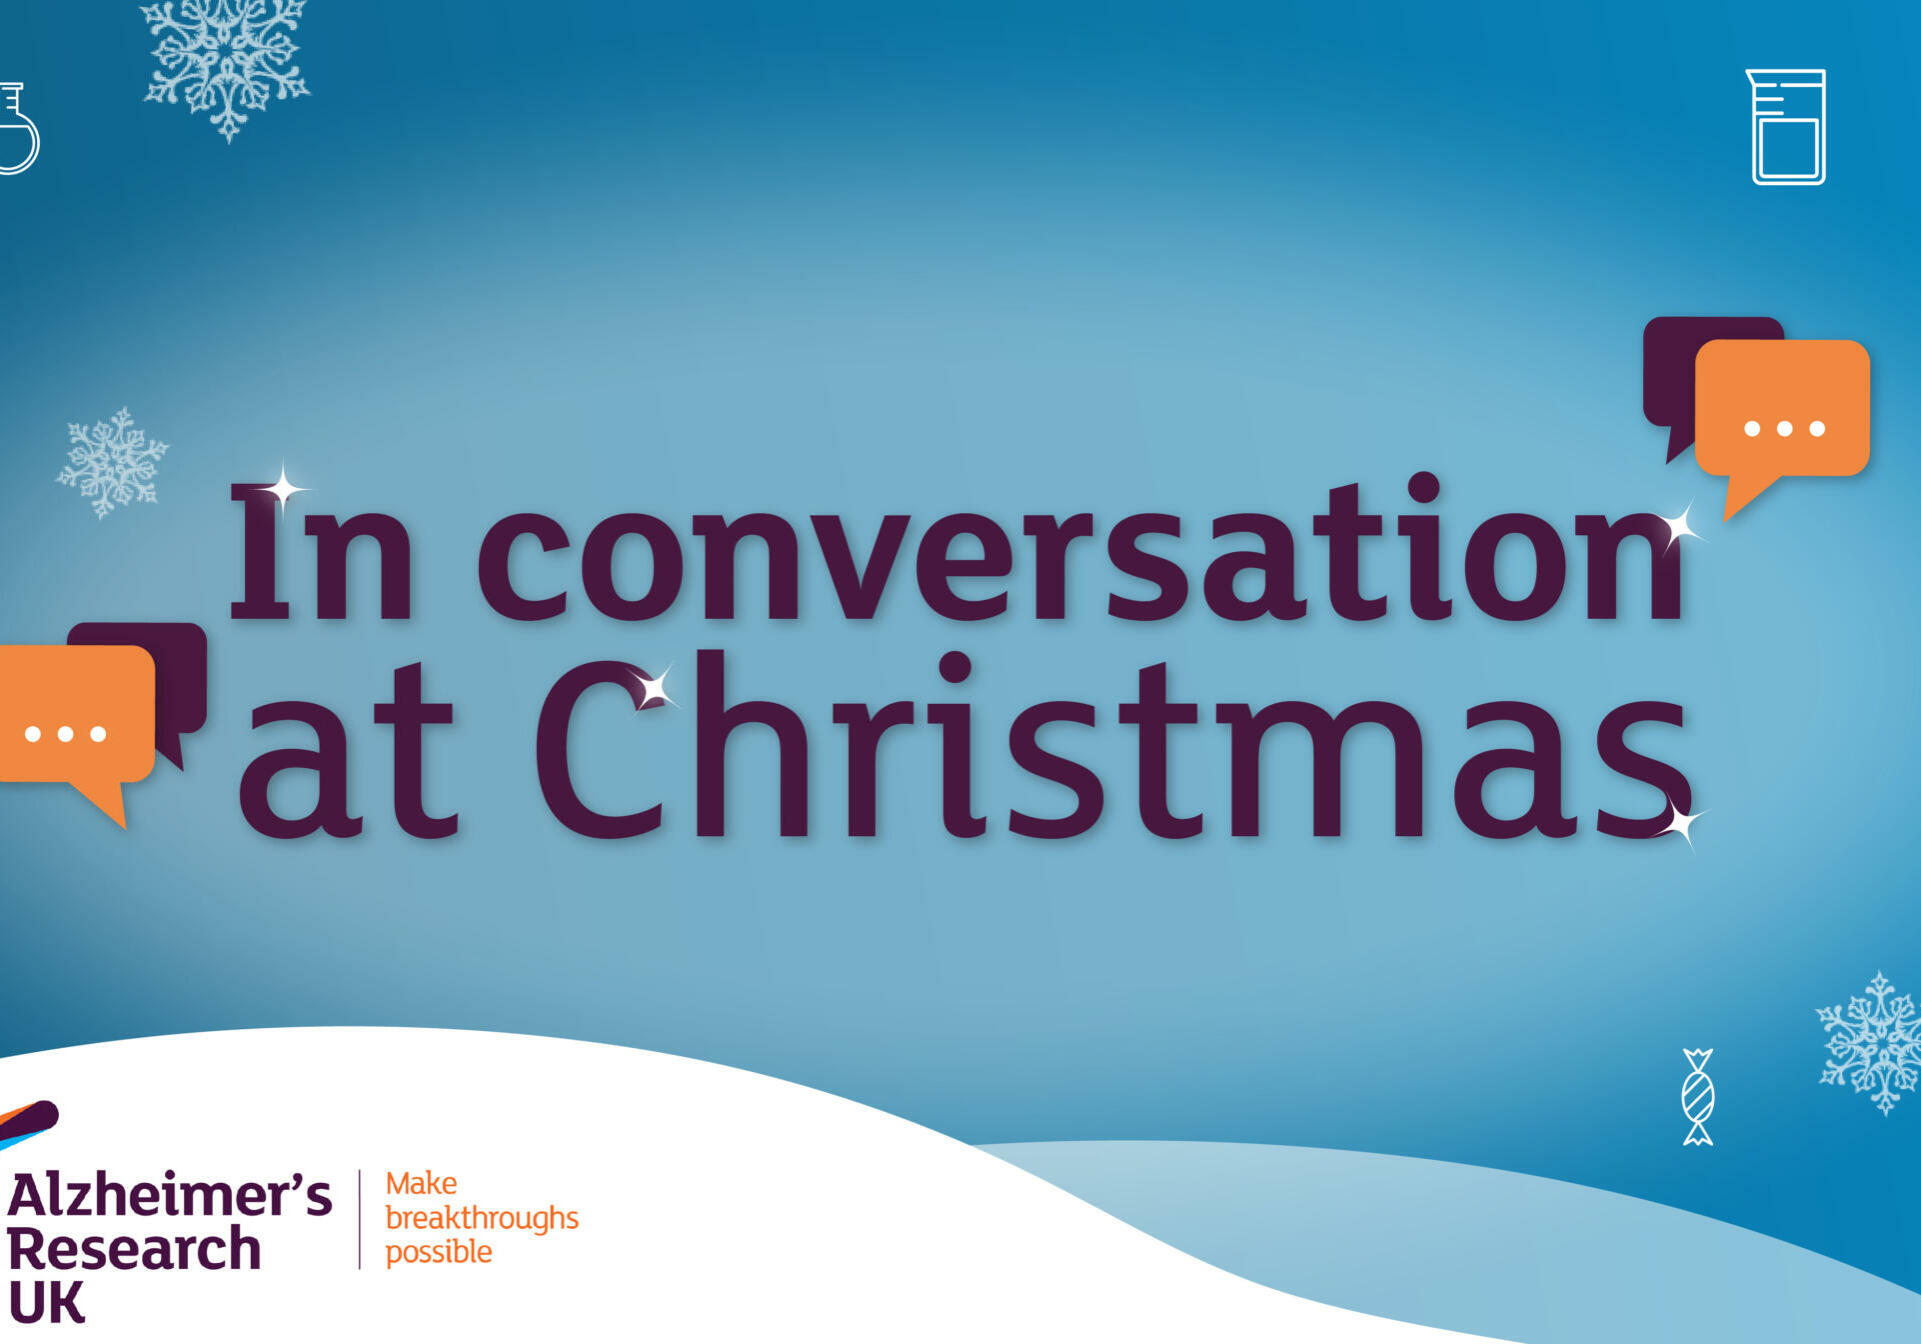 Christmas conversation advert